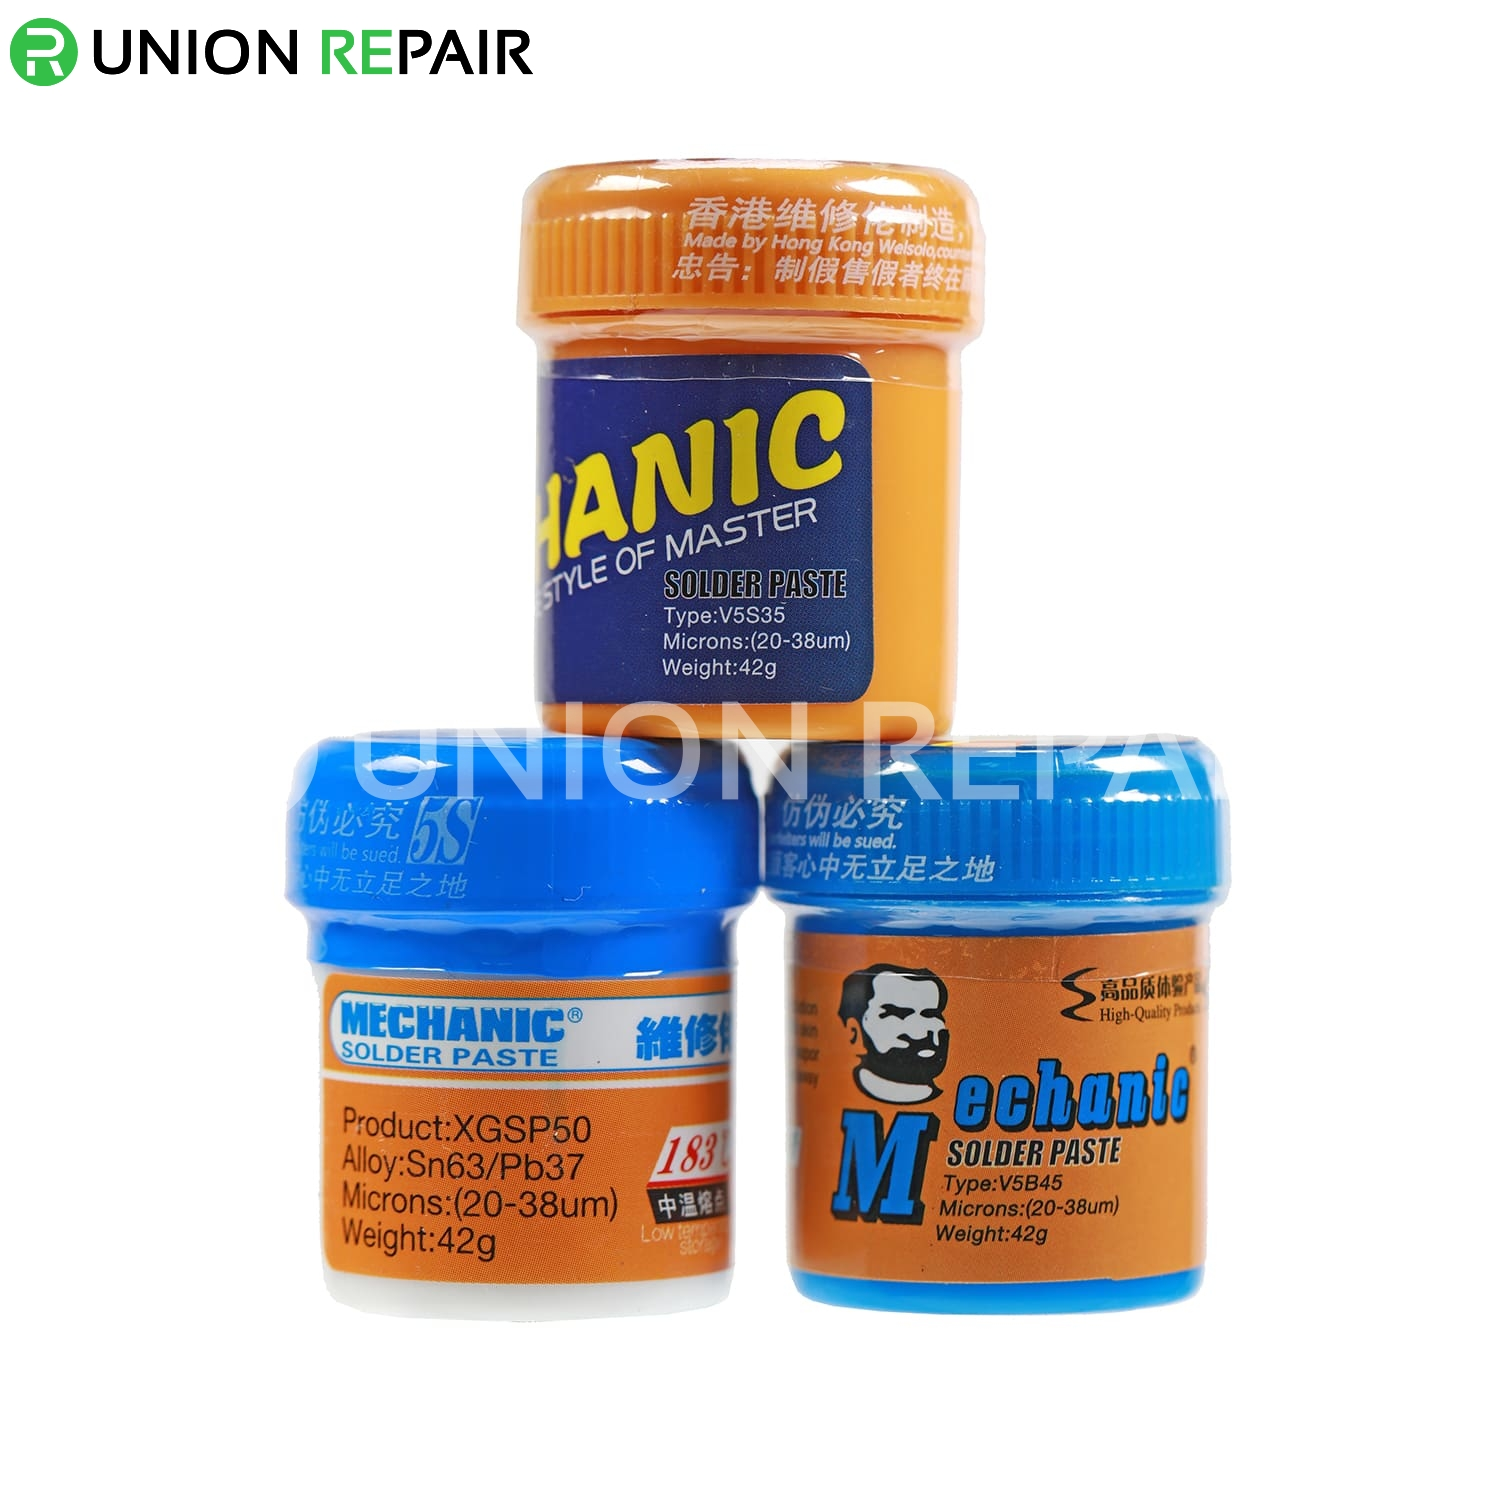 Mechanic Special Solder Paste 42g 138/183/217 degree, Type: V5B45 138 Degree